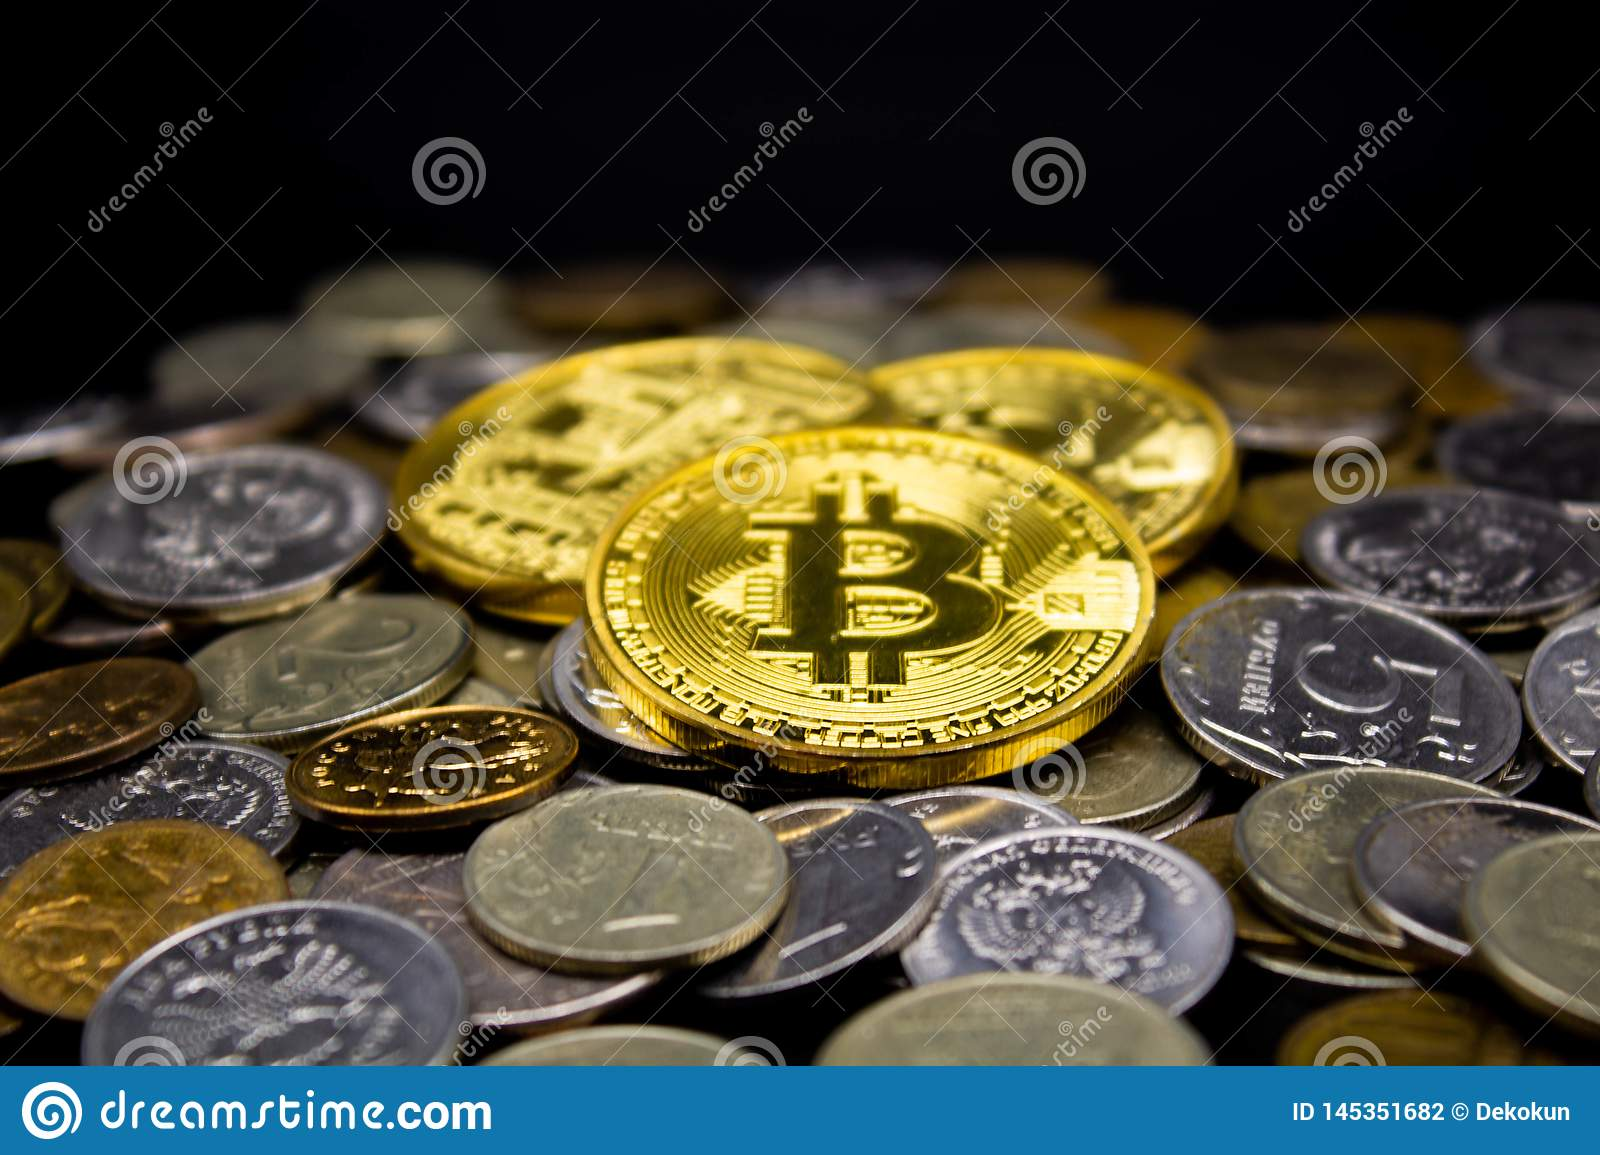 Coins on a black background